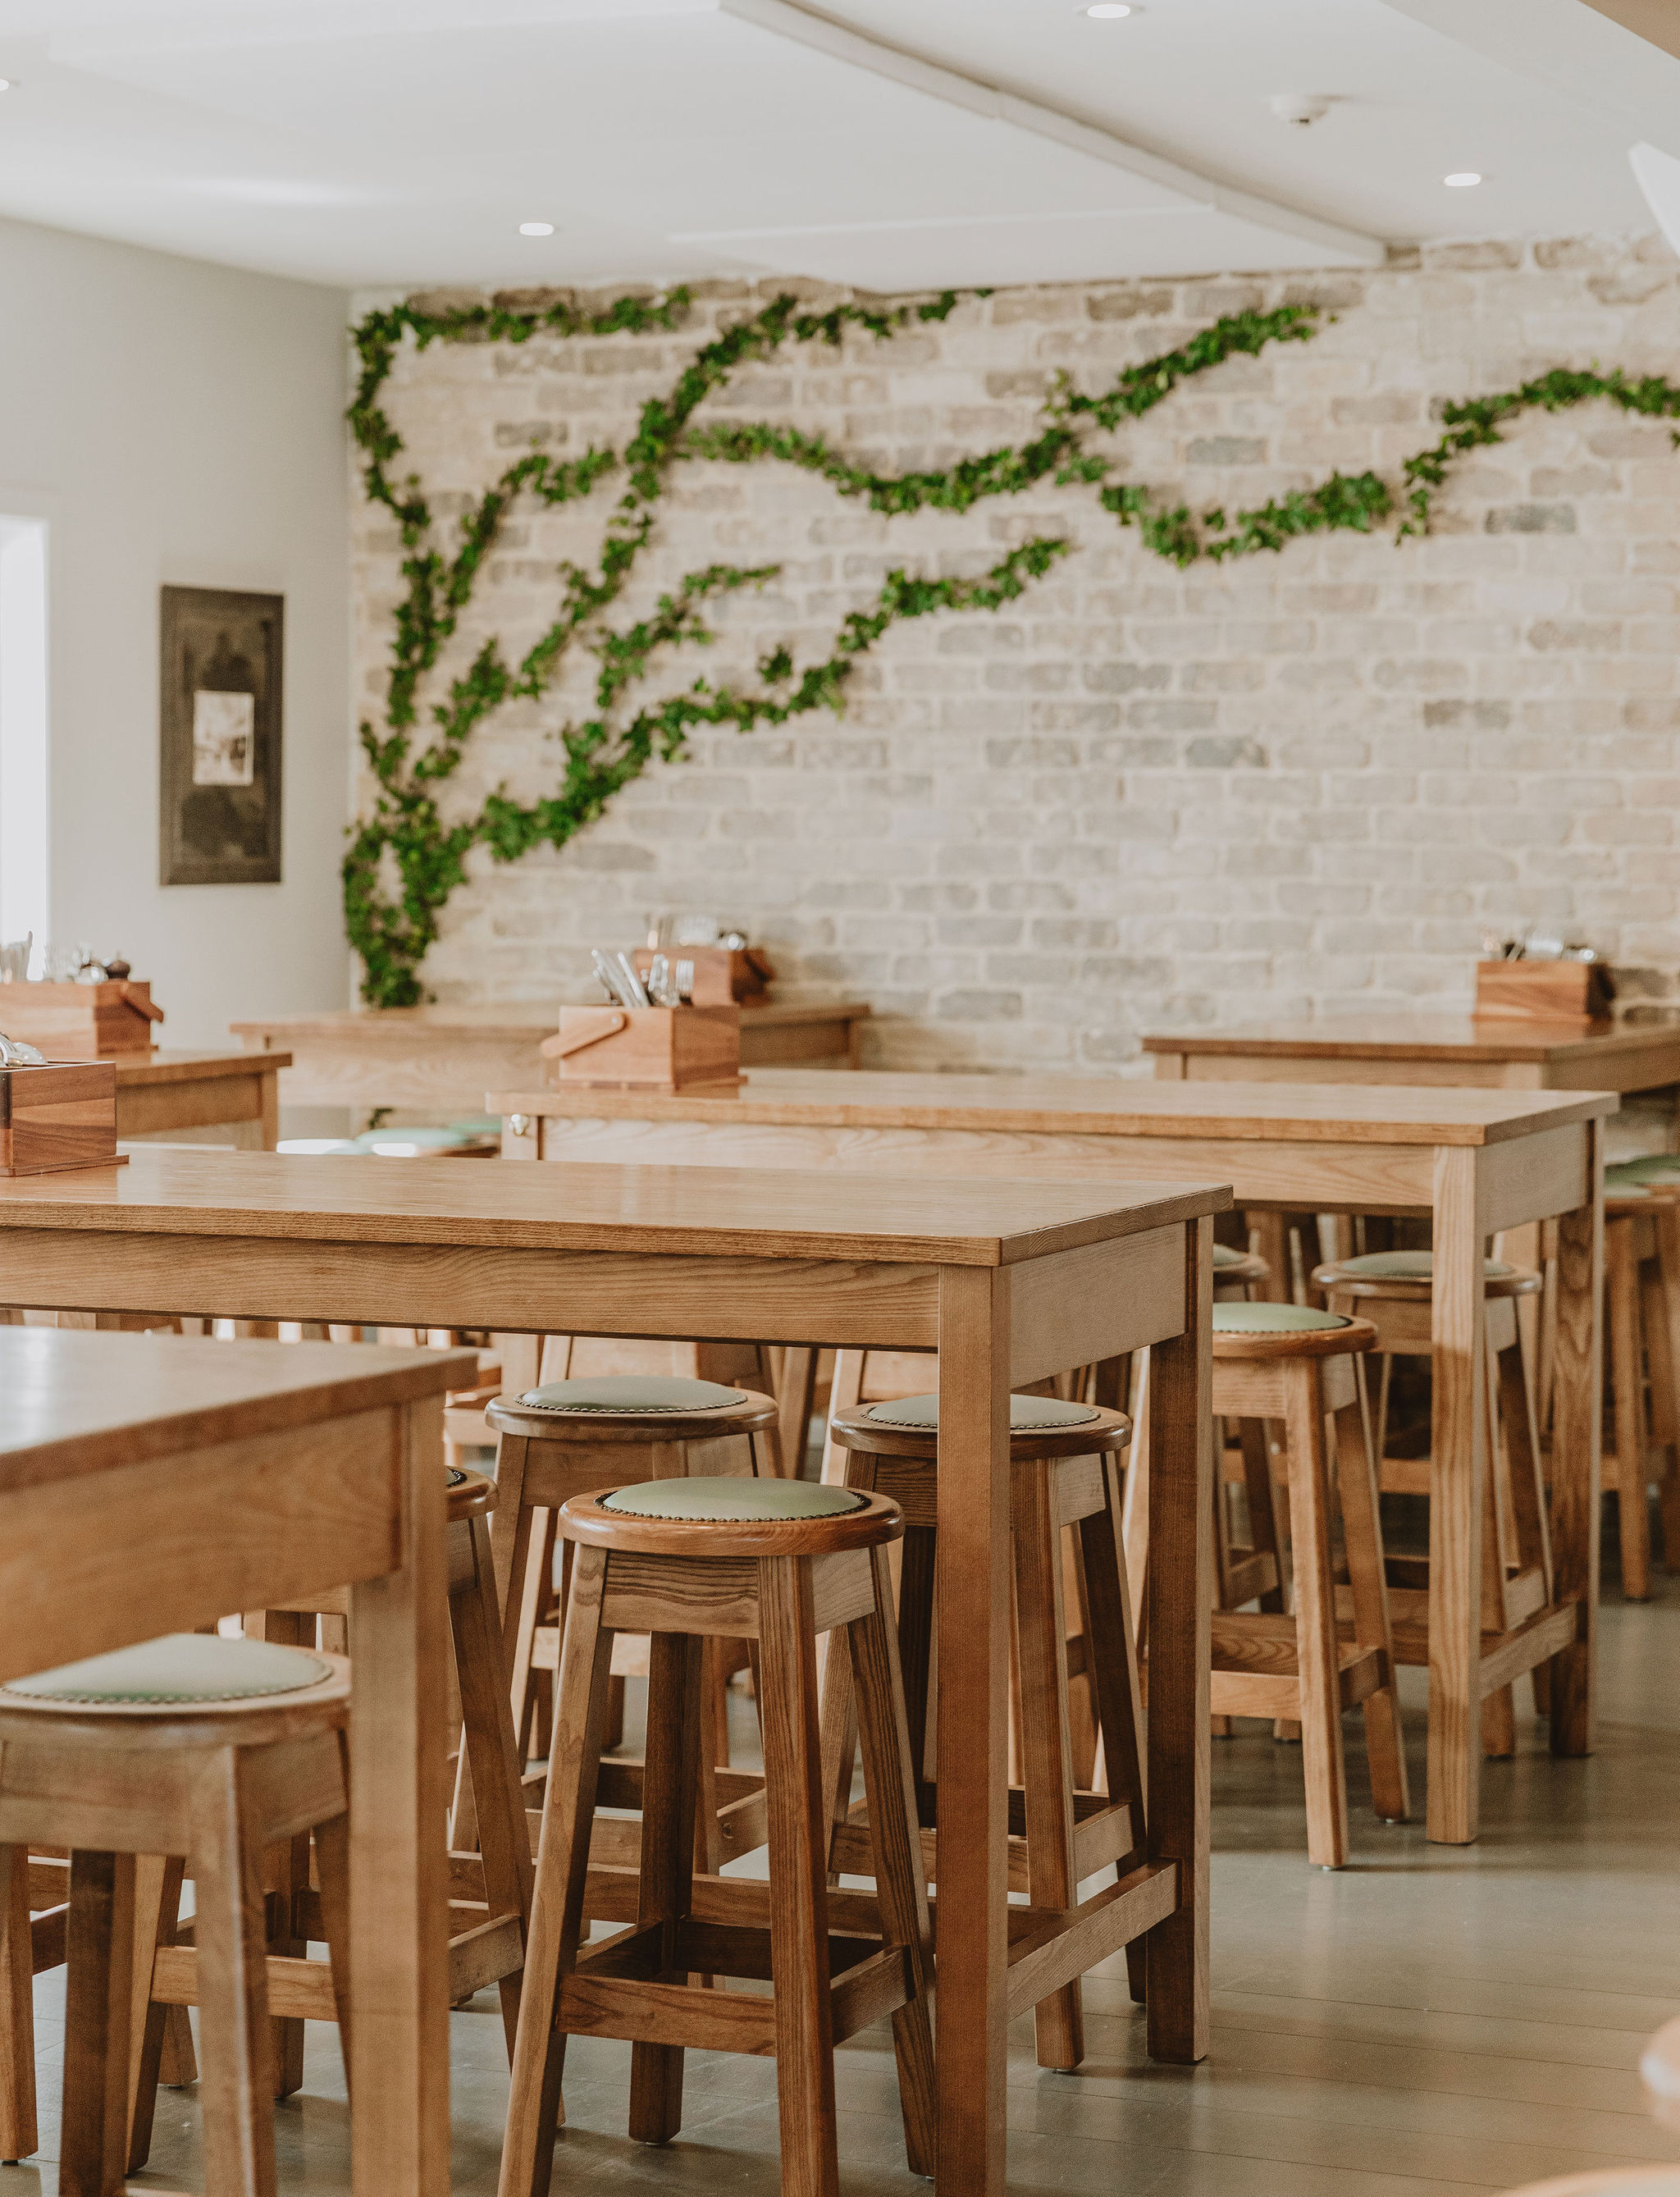 Solid timber leaners are paired with timber stools